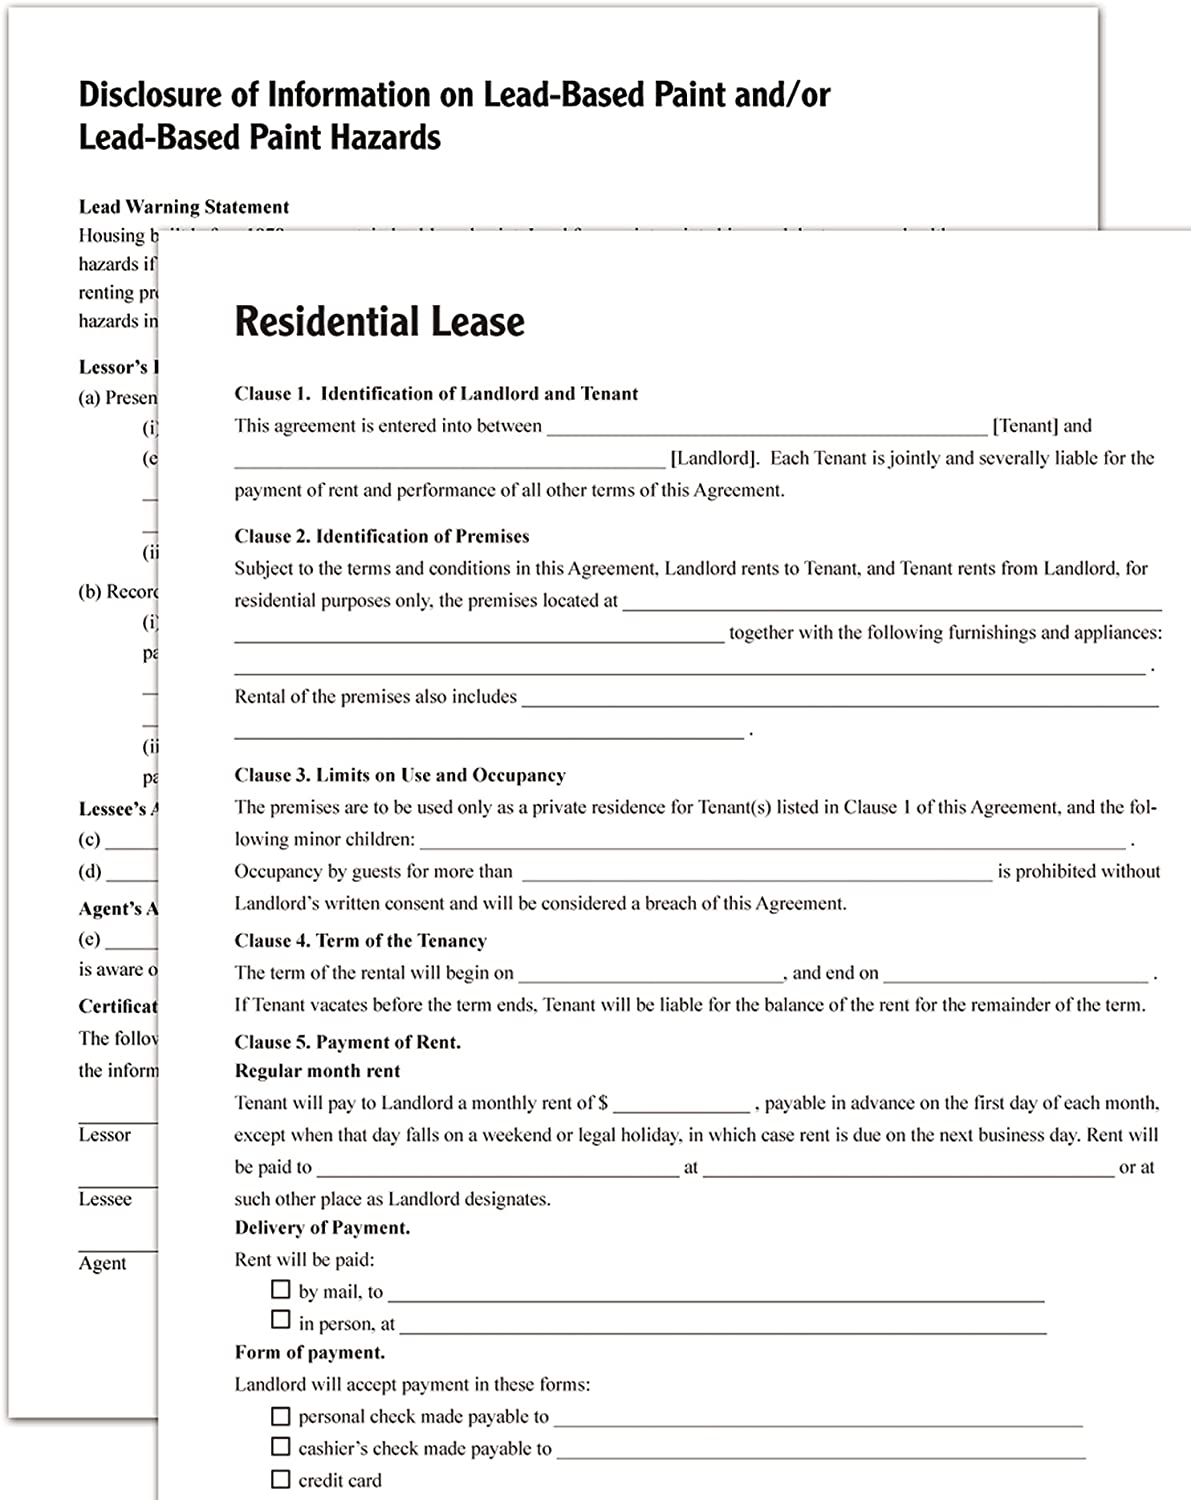 Forms and Instructions for Residential Lease,3.68 Ounces